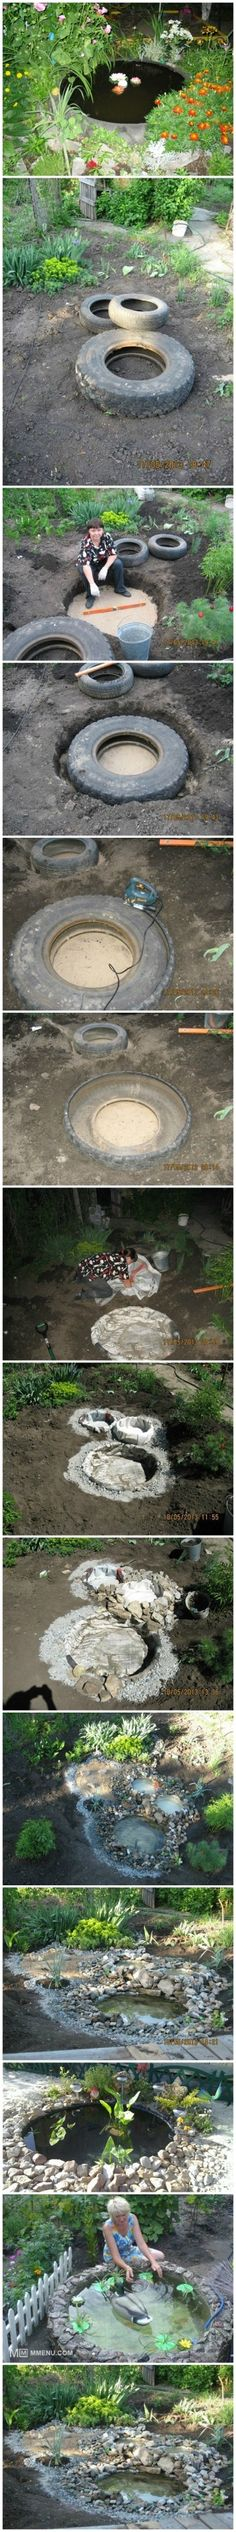 How to Use Old Tractor's Tire Make a Fountain